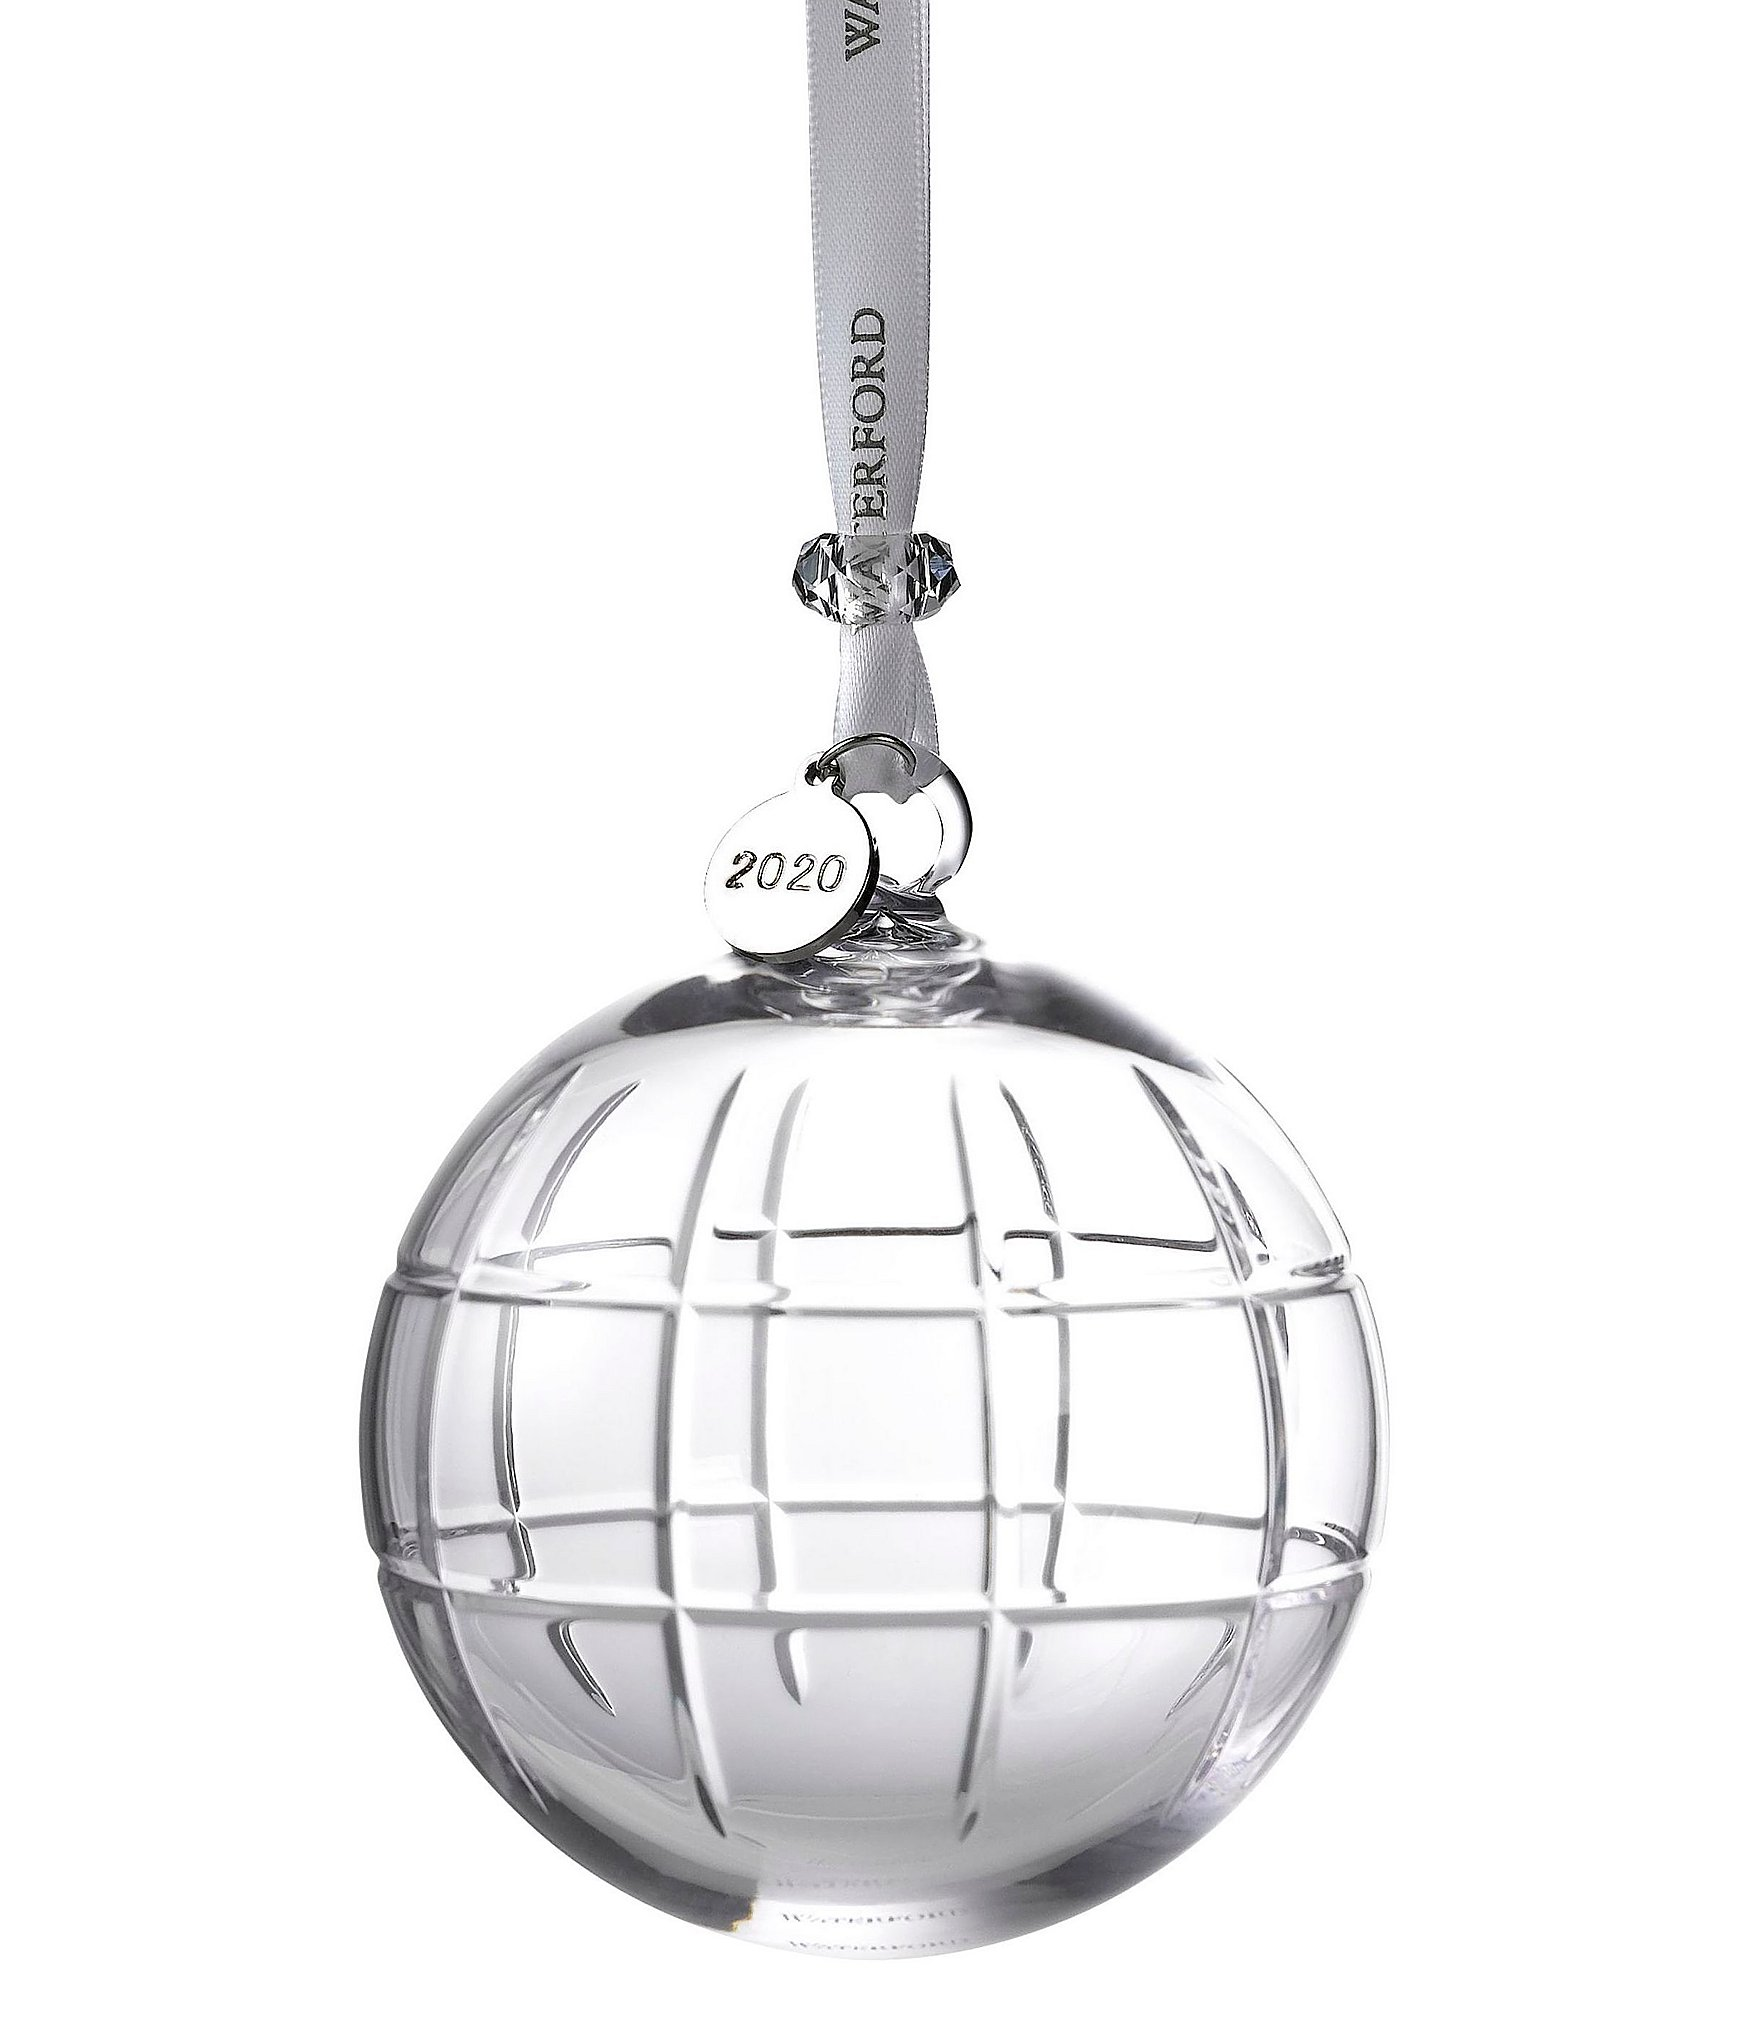 Wterford Christmas 2020 Ornaments Waterford Crystal 2020 Cluin Ball Ornament | Dillard's